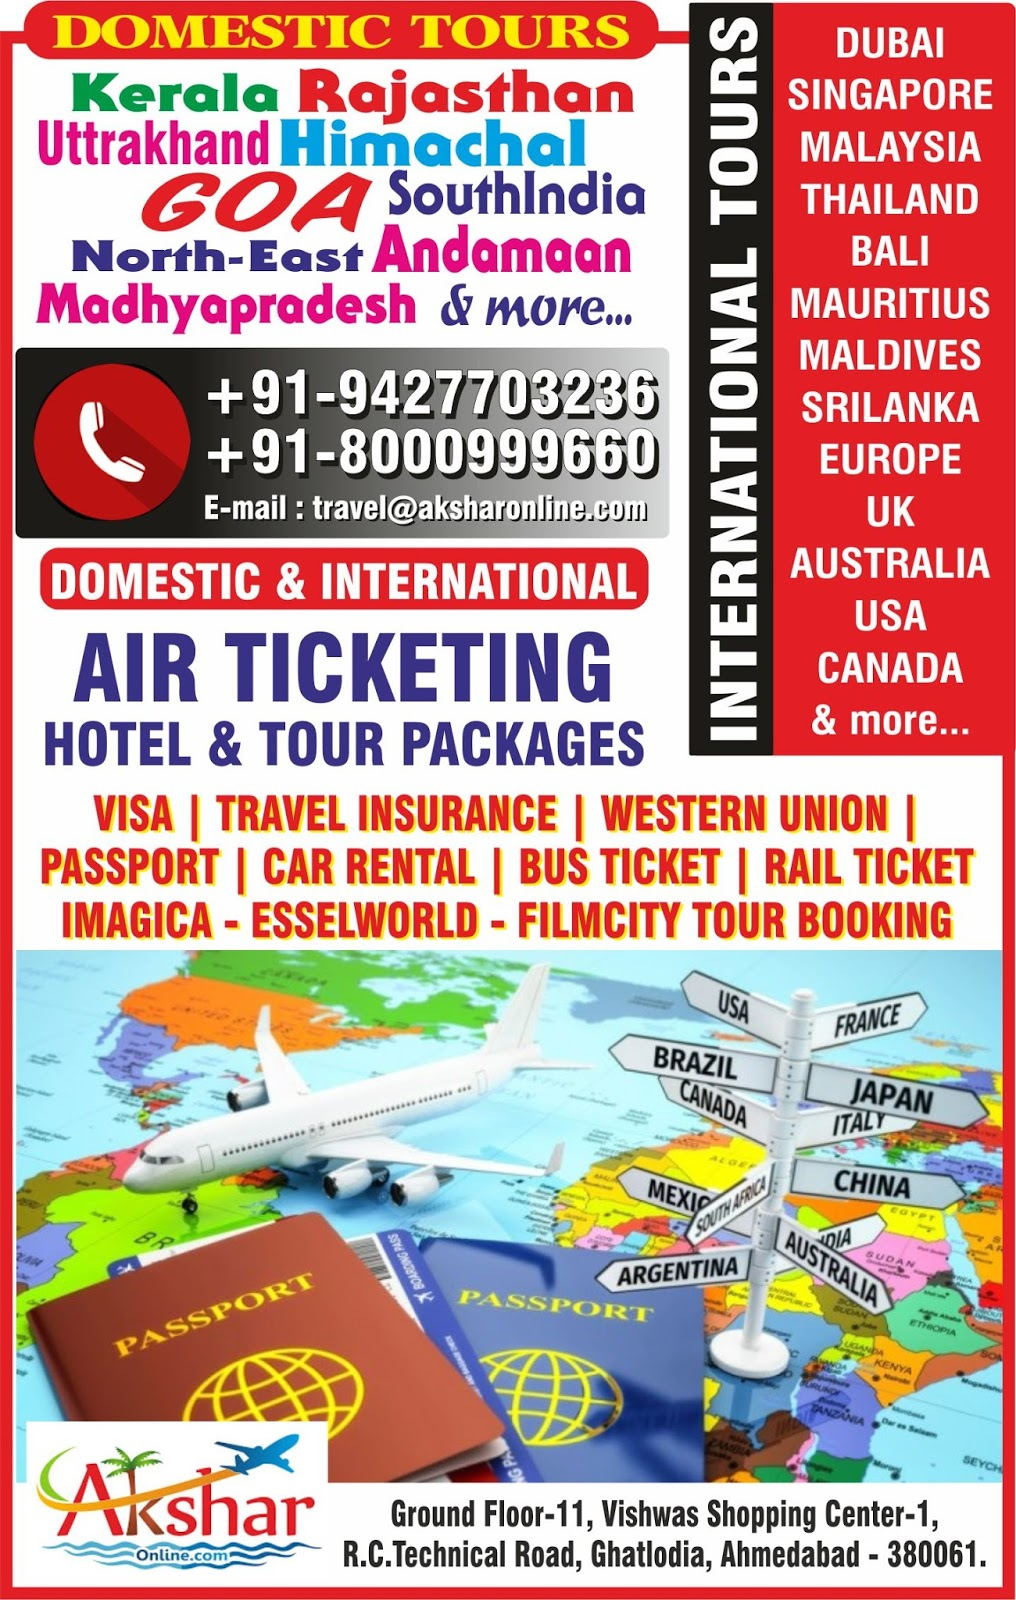 cheap flights, cheap tickets, expedia flights, seats availability, reservation, enquiry, pnr enquiry, cheap air tickets, flight booking, air ticket booking, hotel booking, indianrail, irctc, reservation irctc, luxury train in india, asia travel and hotels, indian travel agency, resorts, hotelairline tickets, holiday, travel ,hotels, hotel, flight booking, cheap flight tickets, package tours, discount air ticket, air ticket offers, air ticket offer, airticket, china airlines,air ticket,travel agency,cheap airline tickets,,cheap air tickets,cheap air,cheap airfare,cheap o air,cheap plane tickets,airplane ticket,travel sites,airline flights, travel websites,travel deals,places to visit,beach holidays,travel packages,best flight deals,travel agencies,best at travel,places to go,disney vacation planner,tour agency,travel consultant,local travel agents,rail europe travel agents,rail travel agent,international travel agency,corporate travel agent,honeymoon travel agent, become airline ticket agent, airline ticket agent calgary, airline ticket agent in ahmedabad, airline ticket agent in ghatlodia, travel agency near me, travel agency in ahmedabad, travel agency in bapunagar, travel agency in dariyapur, travel agency in shahpur, travel agency in khanpur, travel agency in mirzapur, travel agency in shahibaug, travel agency in kali, travel agency in chandola lake, travel agency in bodakdev, travel agency in maninagar, travel agency in vastrapur, travel agency in nava vadaj, travel agency in Ambawadi, travel agency in Ellis Bridge, travel agency in navrangpura, travel agency in ghatlodiya, travel agency in naroda, travel agency in jodhpur, travel agency in paldi, travel agency in bopal, travel agency in ranip, travel agency in gota, travel agency in sarkhej, travel agency in vasana, travel agency in vejalpur, travel agency in gomtipur, travel agency in C G Road, travel agency in lawgarden, travel agency in laldarwaja, travel agency in prahladnagar, travel agency in satellite, travel agency in jivrajpark, travel agency in narol, travel agency in vatwa, travel agency in  ghodasar, travel agency in gurukul, travel agency in  isanpur, travel agency in chandkheda, travel agency in vastral, travel agency in juhapura, travel agency in thaltej, travel agency in chandlodiya, travel agency in krishnanagar, travel agency in shilaj, travel agency in vastral, travel agency in meghani nagar, travel agency in ashtodia, travel agency in gandhinagar, travel agency in kalol, travel agency in bhavnagar, travel agency in mehsana, travel agency in palanpur, travel agency in banaskantha, Rail Ticket Booking Agent near me, Rail Ticket Booking Agent in ahmedabad, Rail Ticket Booking Agent in bapunagar, Rail Ticket Booking Agent in dariyapur, Rail Ticket Booking Agent in shahpur, Rail Ticket Booking Agent in khanpur, Rail Ticket Booking Agent in mirzapur, Rail Ticket Booking Agent in shahibaug, Rail Ticket Booking Agent in kali, Rail Ticket Booking Agent in chandola lake, Rail Ticket Booking Agent in bodakdev, Rail Ticket Booking Agent in maninagar, Rail Ticket Booking Agent in vastrapur, Rail Ticket Booking Agent in nava vadaj, Rail Ticket Booking Agent in Ambawadi, Rail Ticket Booking Agent in Ellis Bridge, Rail Ticket Booking Agent in navrangpura, Rail Ticket Booking Agent in ghatlodiya, Rail Ticket Booking Agent in naroda, Rail Ticket Booking Agent in jodhpur, Rail Ticket Booking Agent in paldi, Rail Ticket Booking Agent in bopal, Rail Ticket Booking Agent in ranip, Rail Ticket Booking Agent in gota, Rail Ticket Booking Agent in sarkhej, Rail Ticket Booking Agent in vasana, Rail Ticket Booking Agent in vejalpur, Rail Ticket Booking Agent in gomtipur, Rail Ticket Booking Agent in C G Road, Rail Ticket Booking Agent in lawgarden, Rail Ticket Booking Agent in laldarwaja, Rail Ticket Booking Agent in prahladnagar, Rail Ticket Booking Agent in satellite, Rail Ticket Booking Agent in jivrajpark, Rail Ticket Booking Agent in narol, Rail Ticket Booking Agent in vatwa, Rail Ticket Booking Agent in  ghodasar, Rail Ticket Booking Agent in gurukul, Rail Ticket Booking Agent in  isanpur, Rail Ticket Booking Agent in chandkheda, Rail Ticket Booking Agent in vastral, Rail Ticket Booking Agent in juhapura, Rail Ticket Booking Agent in thaltej, Rail Ticket Booking Agent in chandlodiya, Rail Ticket Booking Agent in krishnanagar, Rail Ticket Booking Agent in shilaj, Rail Ticket Booking Agent in vastral, Rail Ticket Booking Agent in meghani nagar, Rail Ticket Booking Agent in ashtodia, Rail Ticket Booking Agent in gandhinagar, Rail Ticket Booking Agent in kalol, Rail Ticket Booking Agent in bhavnagar, Rail Ticket Booking Agent in mehsana, Rail Ticket Booking Agent in palanpur, Rail Ticket Booking Agent in banaskantha, Air Ticket Booking Agent near me, Air Ticket Booking Agent in ahmedabad, Air Ticket Booking Agent in bapunagar, Air Ticket Booking Agent in dariyapur, Air Ticket Booking Agent in shahpur, Air Ticket Booking Agent in khanpur, Air Ticket Booking Agent in mirzapur, Air Ticket Booking Agent in shahibaug, Air Ticket Booking Agent in kali, Air Ticket Booking Agent in chandola lake, Air Ticket Booking Agent in bodakdev, Air Ticket Booking Agent in maninagar, Air Ticket Booking Agent in vastrapur, Air Ticket Booking Agent in nava vadaj, Air Ticket Booking Agent in Ambawadi, Air Ticket Booking Agent in Ellis Bridge, Air Ticket Booking Agent in navrangpura, Air Ticket Booking Agent in ghatlodiya, Air Ticket Booking Agent in naroda, Air Ticket Booking Agent in jodhpur, Air Ticket Booking Agent in paldi, Air Ticket Booking Agent in bopal, Air Ticket Booking Agent in ranip, Air Ticket Booking Agent in gota, Air Ticket Booking Agent in sarkhej, Air Ticket Booking Agent in vasana, Air Ticket Booking Agent in vejalpur, Air Ticket Booking Agent in gomtipur, Air Ticket Booking Agent in C G Road, Air Ticket Booking Agent in lawgarden, Air Ticket Booking Agent in laldarwaja, Air Ticket Booking Agent in prahladnagar, Air Ticket Booking Agent in satellite, Air Ticket Booking Agent in jivrajpark, Air Ticket Booking Agent in narol, Air Ticket Booking Agent in vatwa, Air Ticket Booking Agent in  ghodasar, Air Ticket Booking Agent in gurukul, Air Ticket Booking Agent in  isanpur, Air Ticket Booking Agent in chandkheda, Air Ticket Booking Agent in vastral, Air Ticket Booking Agent in juhapura, Air Ticket Booking Agent in thaltej, Air Ticket Booking Agent in chandlodiya, Air Ticket Booking Agent in krishnanagar, Air Ticket Booking Agent in shilaj, Air Ticket Booking Agent in vastral, Air Ticket Booking Agent in meghani nagar, Air Ticket Booking Agent in ashtodia, Air Ticket Booking Agent in gandhinagar, Air Ticket Booking Agent in kalol, Air Ticket Booking Agent in bhavnagar, Air Ticket Booking Agent in mehsana, Air Ticket Booking Agent in palanpur, Air Ticket Booking Agent in banaskantha, Bus Ticket Booking near me, Bus Ticket Booking in ahmedabad, Bus Ticket Booking in bapunagar, Bus Ticket Booking in dariyapur, Bus Ticket Booking in shahpur, Bus Ticket Booking in khanpur, Bus Ticket Booking in mirzapur, Bus Ticket Booking in shahibaug, Bus Ticket Booking in kali, Bus Ticket Booking in chandola lake, Bus Ticket Booking in bodakdev, Bus Ticket Booking in maninagar, Bus Ticket Booking in vastrapur, Bus Ticket Booking in nava vadaj, Bus Ticket Booking in Ambawadi, Bus Ticket Booking in Ellis Bridge, Bus Ticket Booking in navrangpura, Bus Ticket Booking in ghatlodiya, Bus Ticket Booking in naroda, Bus Ticket Booking in jodhpur, Bus Ticket Booking in paldi, Bus Ticket Booking in bopal, Bus Ticket Booking in ranip, Bus Ticket Booking in gota, Bus Ticket Booking in sarkhej, Bus Ticket Booking in vasana, Bus Ticket Booking in vejalpur, Bus Ticket Booking in gomtipur, Bus Ticket Booking in C G Road, Bus Ticket Booking in lawgarden, Bus Ticket Booking in laldarwaja, Bus Ticket Booking in prahladnagar, Bus Ticket Booking in satellite, Bus Ticket Booking in jivrajpark, Bus Ticket Booking in narol, Bus Ticket Booking in vatwa, Bus Ticket Booking in  ghodasar, Bus Ticket Booking in gurukul, Bus Ticket Booking in  isanpur, Bus Ticket Booking in chandkheda, Bus Ticket Booking in vastral, Bus Ticket Booking in juhapura, Bus Ticket Booking in thaltej, Bus Ticket Booking in chandlodiya, Bus Ticket Booking in krishnanagar, Bus Ticket Booking in shilaj, Bus Ticket Booking in vastral, Bus Ticket Booking in meghani nagar, Bus Ticket Booking in ashtodia, Bus Ticket Booking in gandhinagar, Bus Ticket Booking in kalol, Bus Ticket Booking in bhavnagar, Bus Ticket Booking in mehsana, Bus Ticket Booking in palanpur, Bus Ticket Booking in banaskantha, Hotel Tour Package Booking Agent near me, Hotel Tour Package Booking Agent in ahmedabad, Hotel Tour Package Booking Agent in bapunagar, Hotel Tour Package Booking Agent in dariyapur, Hotel Tour Package Booking Agent in shahpur, Hotel Tour Package Booking Agent in khanpur, Hotel Tour Package Booking Agent in mirzapur, Hotel Tour Package Booking Agent in shahibaug, Hotel Tour Package Booking Agent in kali, Hotel Tour Package Booking Agent in chandola lake, Hotel Tour Package Booking Agent in bodakdev, Hotel Tour Package Booking Agent in maninagar, Hotel Tour Package Booking Agent in vastrapur, Hotel Tour Package Booking Agent in nava vadaj, Hotel Tour Package Booking Agent in Ambawadi, Hotel Tour Package Booking Agent in Ellis Bridge, Hotel Tour Package Booking Agent in navrangpura, Hotel Tour Package Booking Agent in ghatlodiya, Hotel Tour Package Booking Agent in naroda, Hotel Tour Package Booking Agent in jodhpur, Hotel Tour Package Booking Agent in paldi, Hotel Tour Package Booking Agent in bopal, Hotel Tour Package Booking Agent in ranip, Hotel Tour Package Booking Agent in gota, Hotel Tour Package Booking Agent in sarkhej, Hotel Tour Package Booking Agent in vasana, Hotel Tour Package Booking Agent in vejalpur, Hotel Tour Package Booking Agent in gomtipur, Hotel Tour Package Booking Agent in C G Road, Hotel Tour Package Booking Agent in lawgarden, Hotel Tour Package Booking Agent in laldarwaja, Hotel Tour Package Booking Agent in prahladnagar, Hotel Tour Package Booking Agent in satellite, Hotel Tour Package Booking Agent in jivrajpark, Hotel Tour Package Booking Agent in narol, Hotel Tour Package Booking Agent in vatwa, Hotel Tour Package Booking Agent in  ghodasar, Hotel Tour Package Booking Agent in gurukul, Hotel Tour Package Booking Agent in  isanpur, Hotel Tour Package Booking Agent in chandkheda, Hotel Tour Package Booking Agent in vastral, Hotel Tour Package Booking Agent in juhapura, Hotel Tour Package Booking Agent in thaltej, Hotel Tour Package Booking Agent in chandlodiya, Hotel Tour Package Booking Agent in krishnanagar, Hotel Tour Package Booking Agent in shilaj, Hotel Tour Package Booking Agent in vastral, Hotel Tour Package Booking Agent in meghani nagar, Hotel Tour Package Booking Agent in ashtodia, Hotel Tour Package Booking Agent in gandhinagar, Hotel Tour Package Booking Agent in kalol, Hotel Tour Package Booking Agent in bhavnagar, Hotel Tour Package Booking Agent in mehsana, Hotel Tour Package Booking Agent in palanpur, Hotel Tour Package Booking Agent in banaskantha,